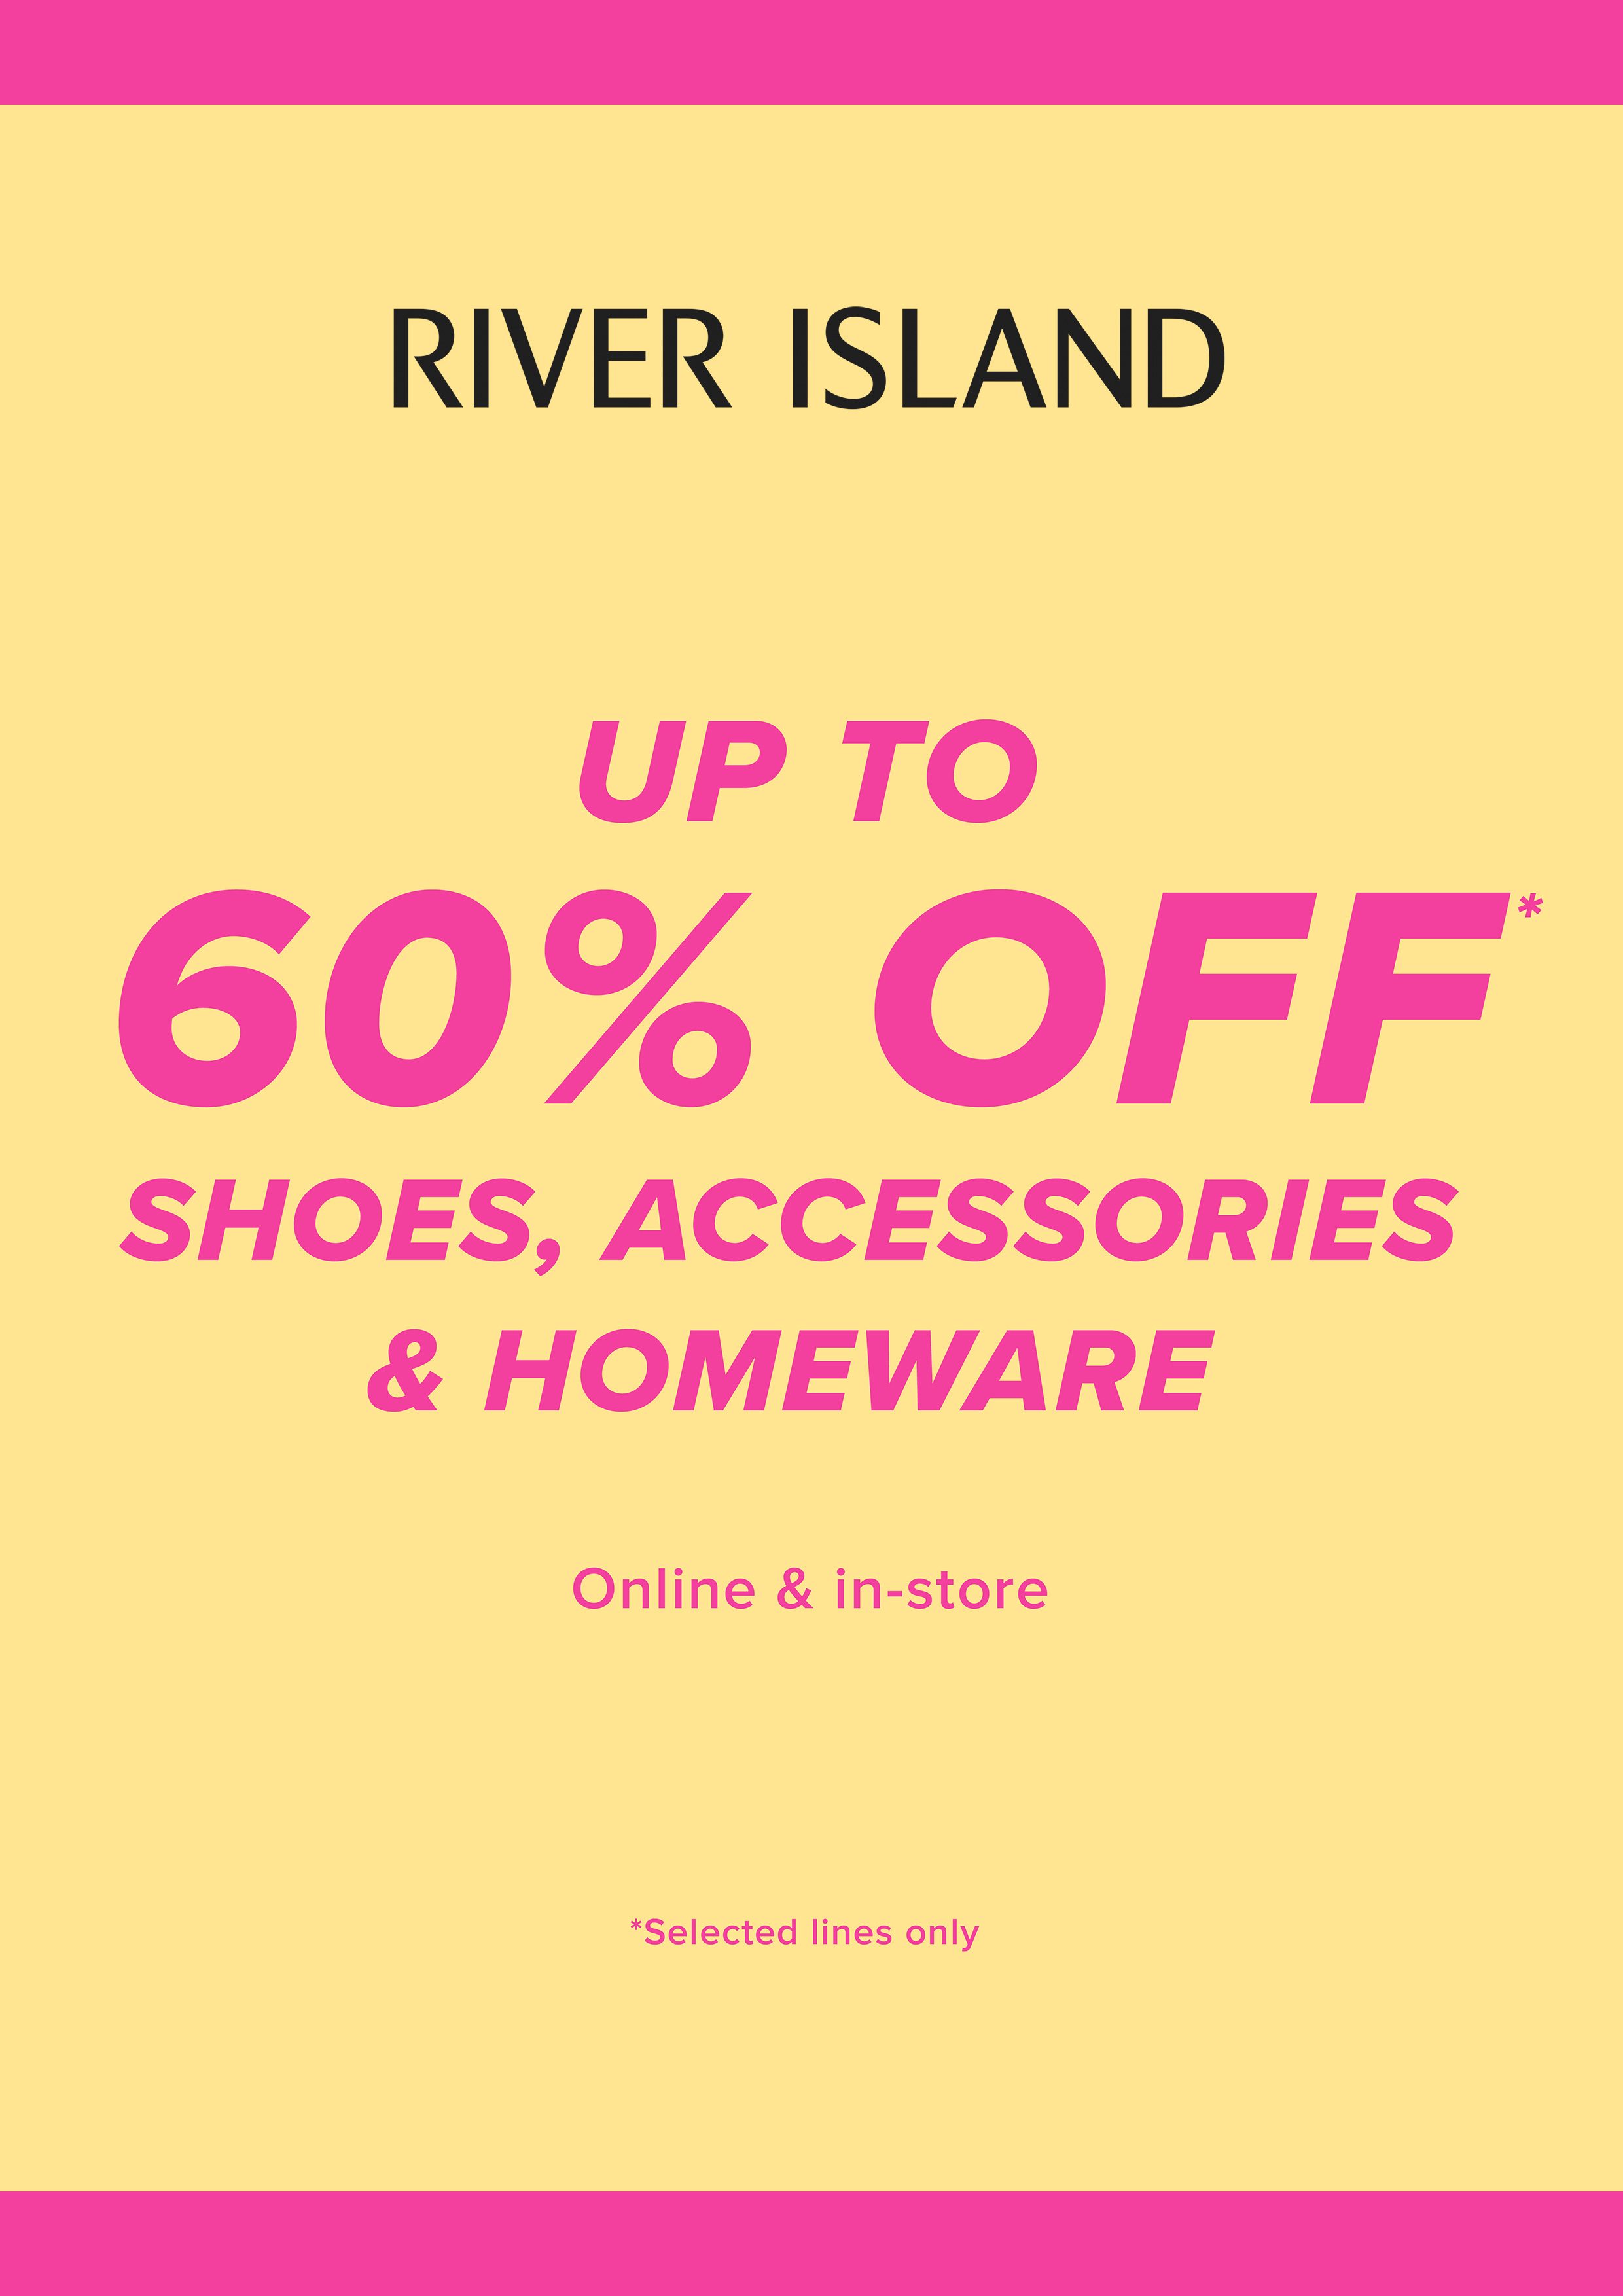 Up to 60% off in River Island!*